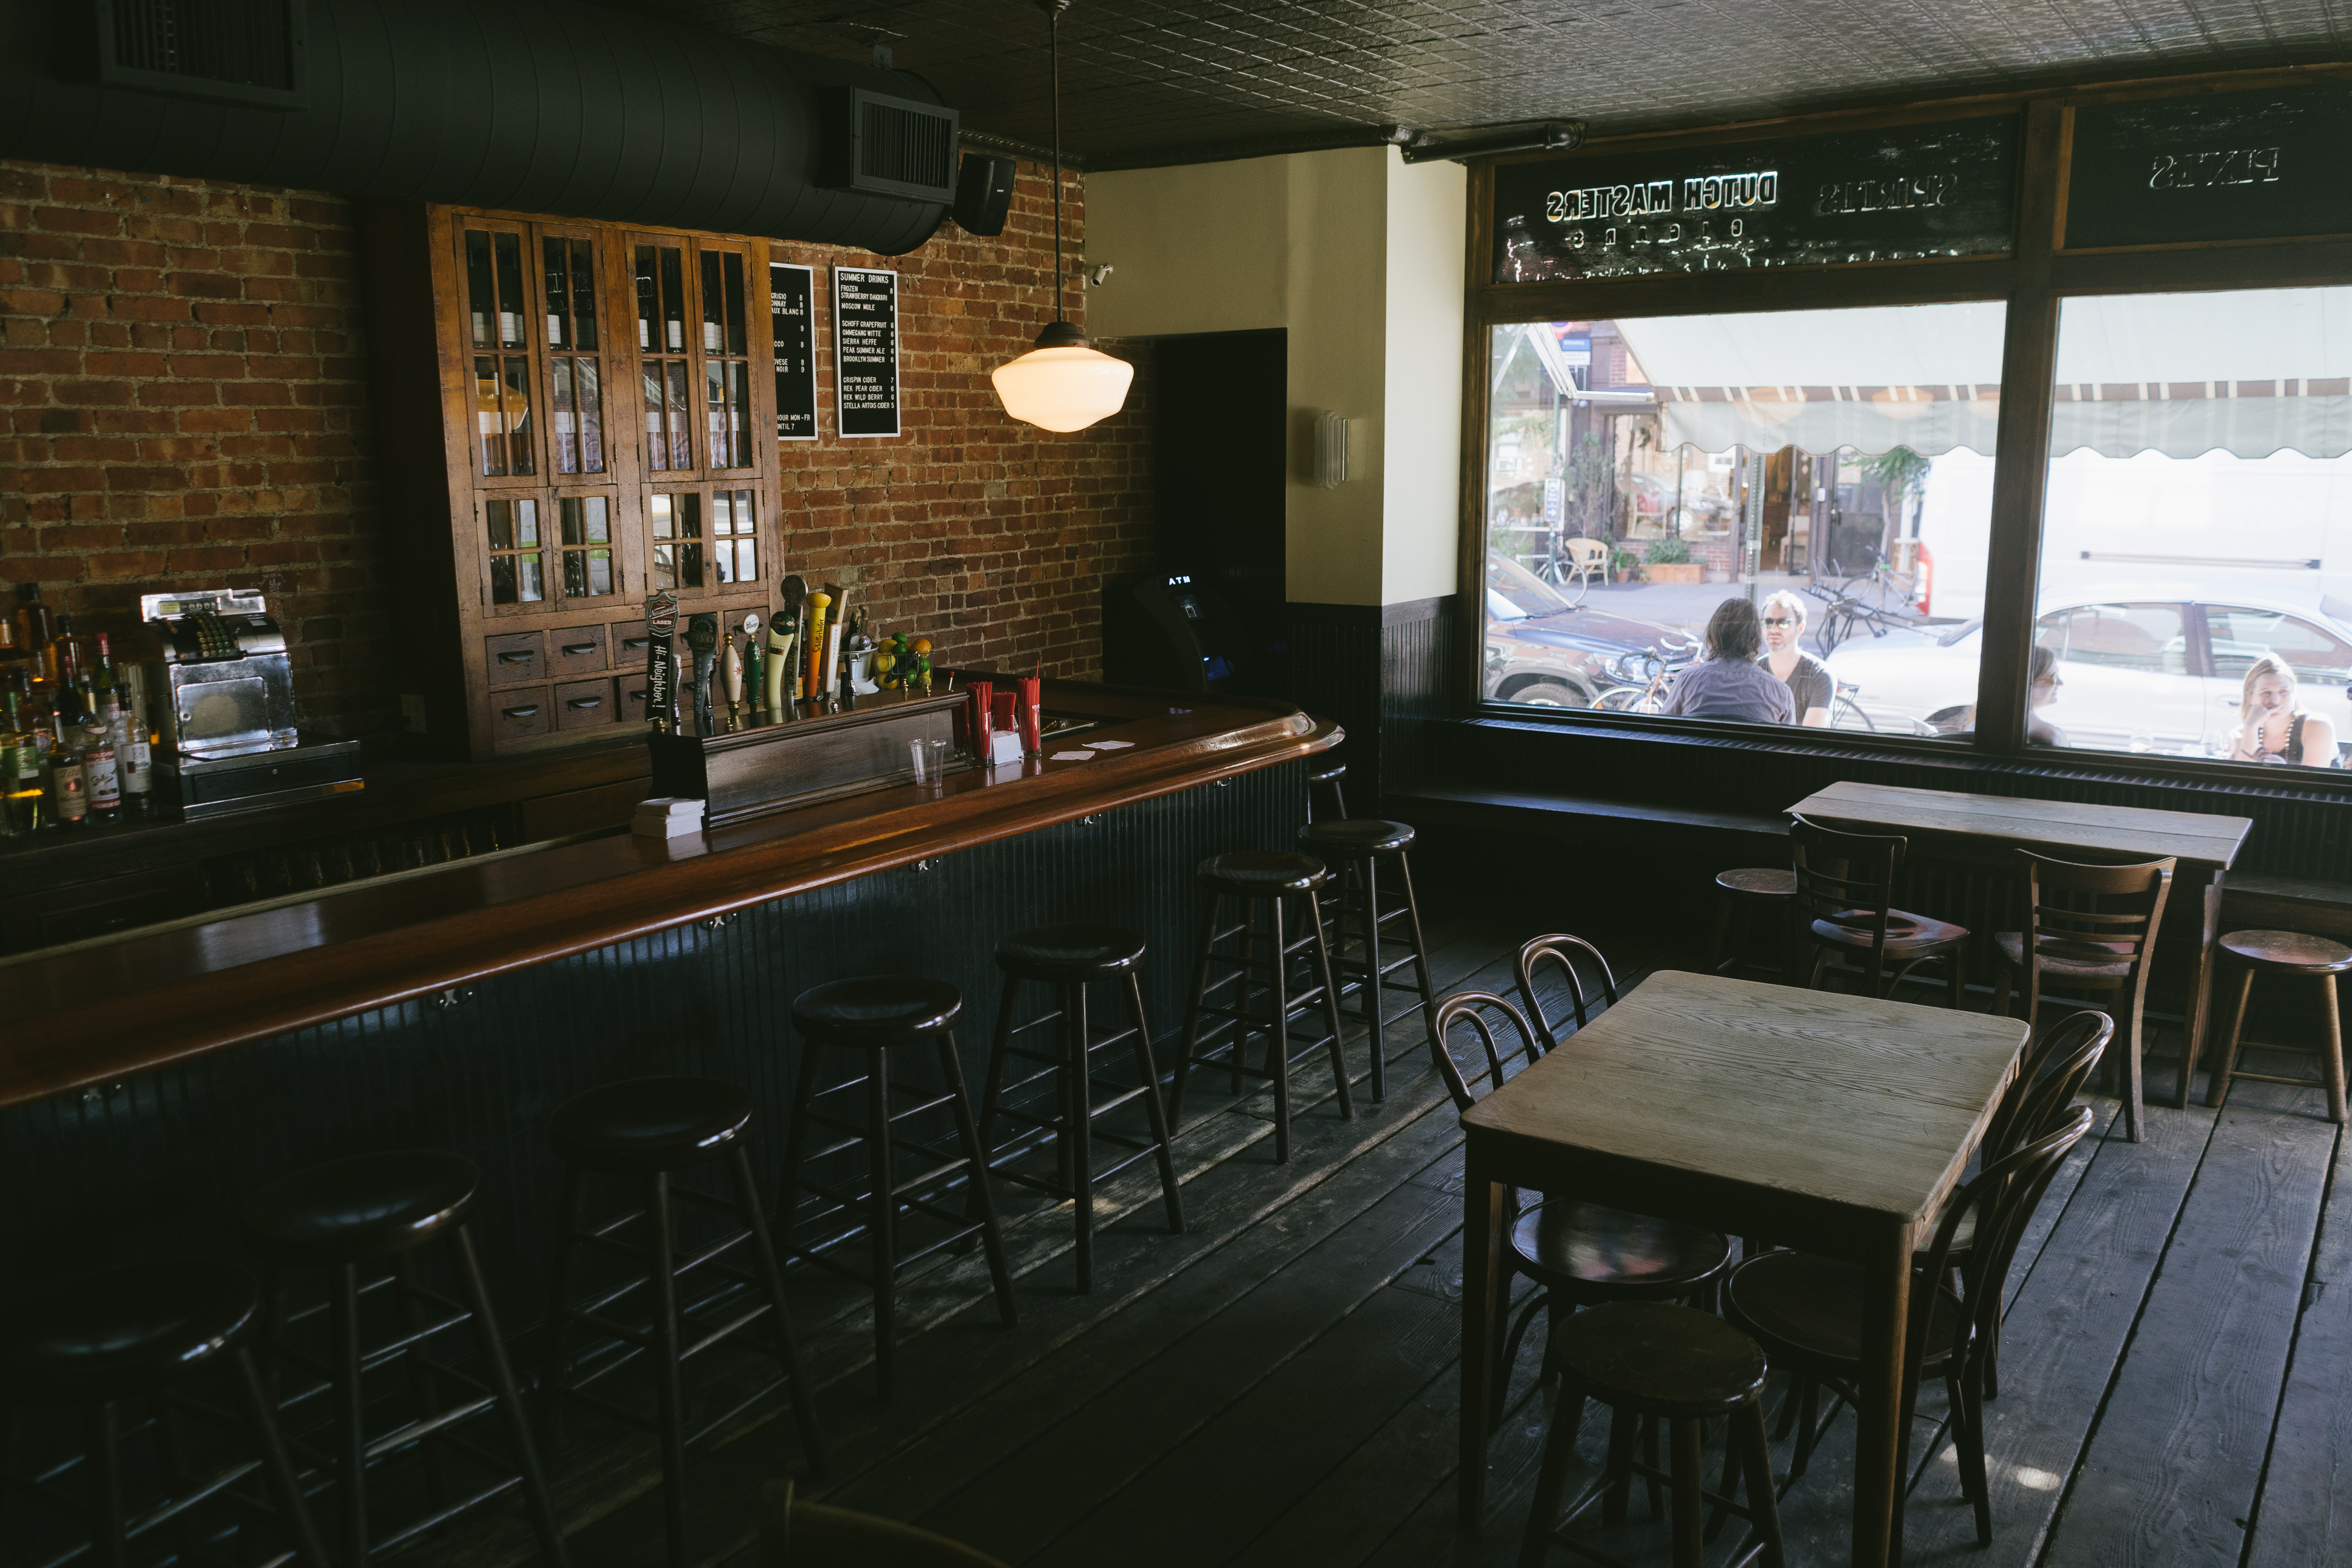 The Best Bars In Greenpoint Greenpoint New York The